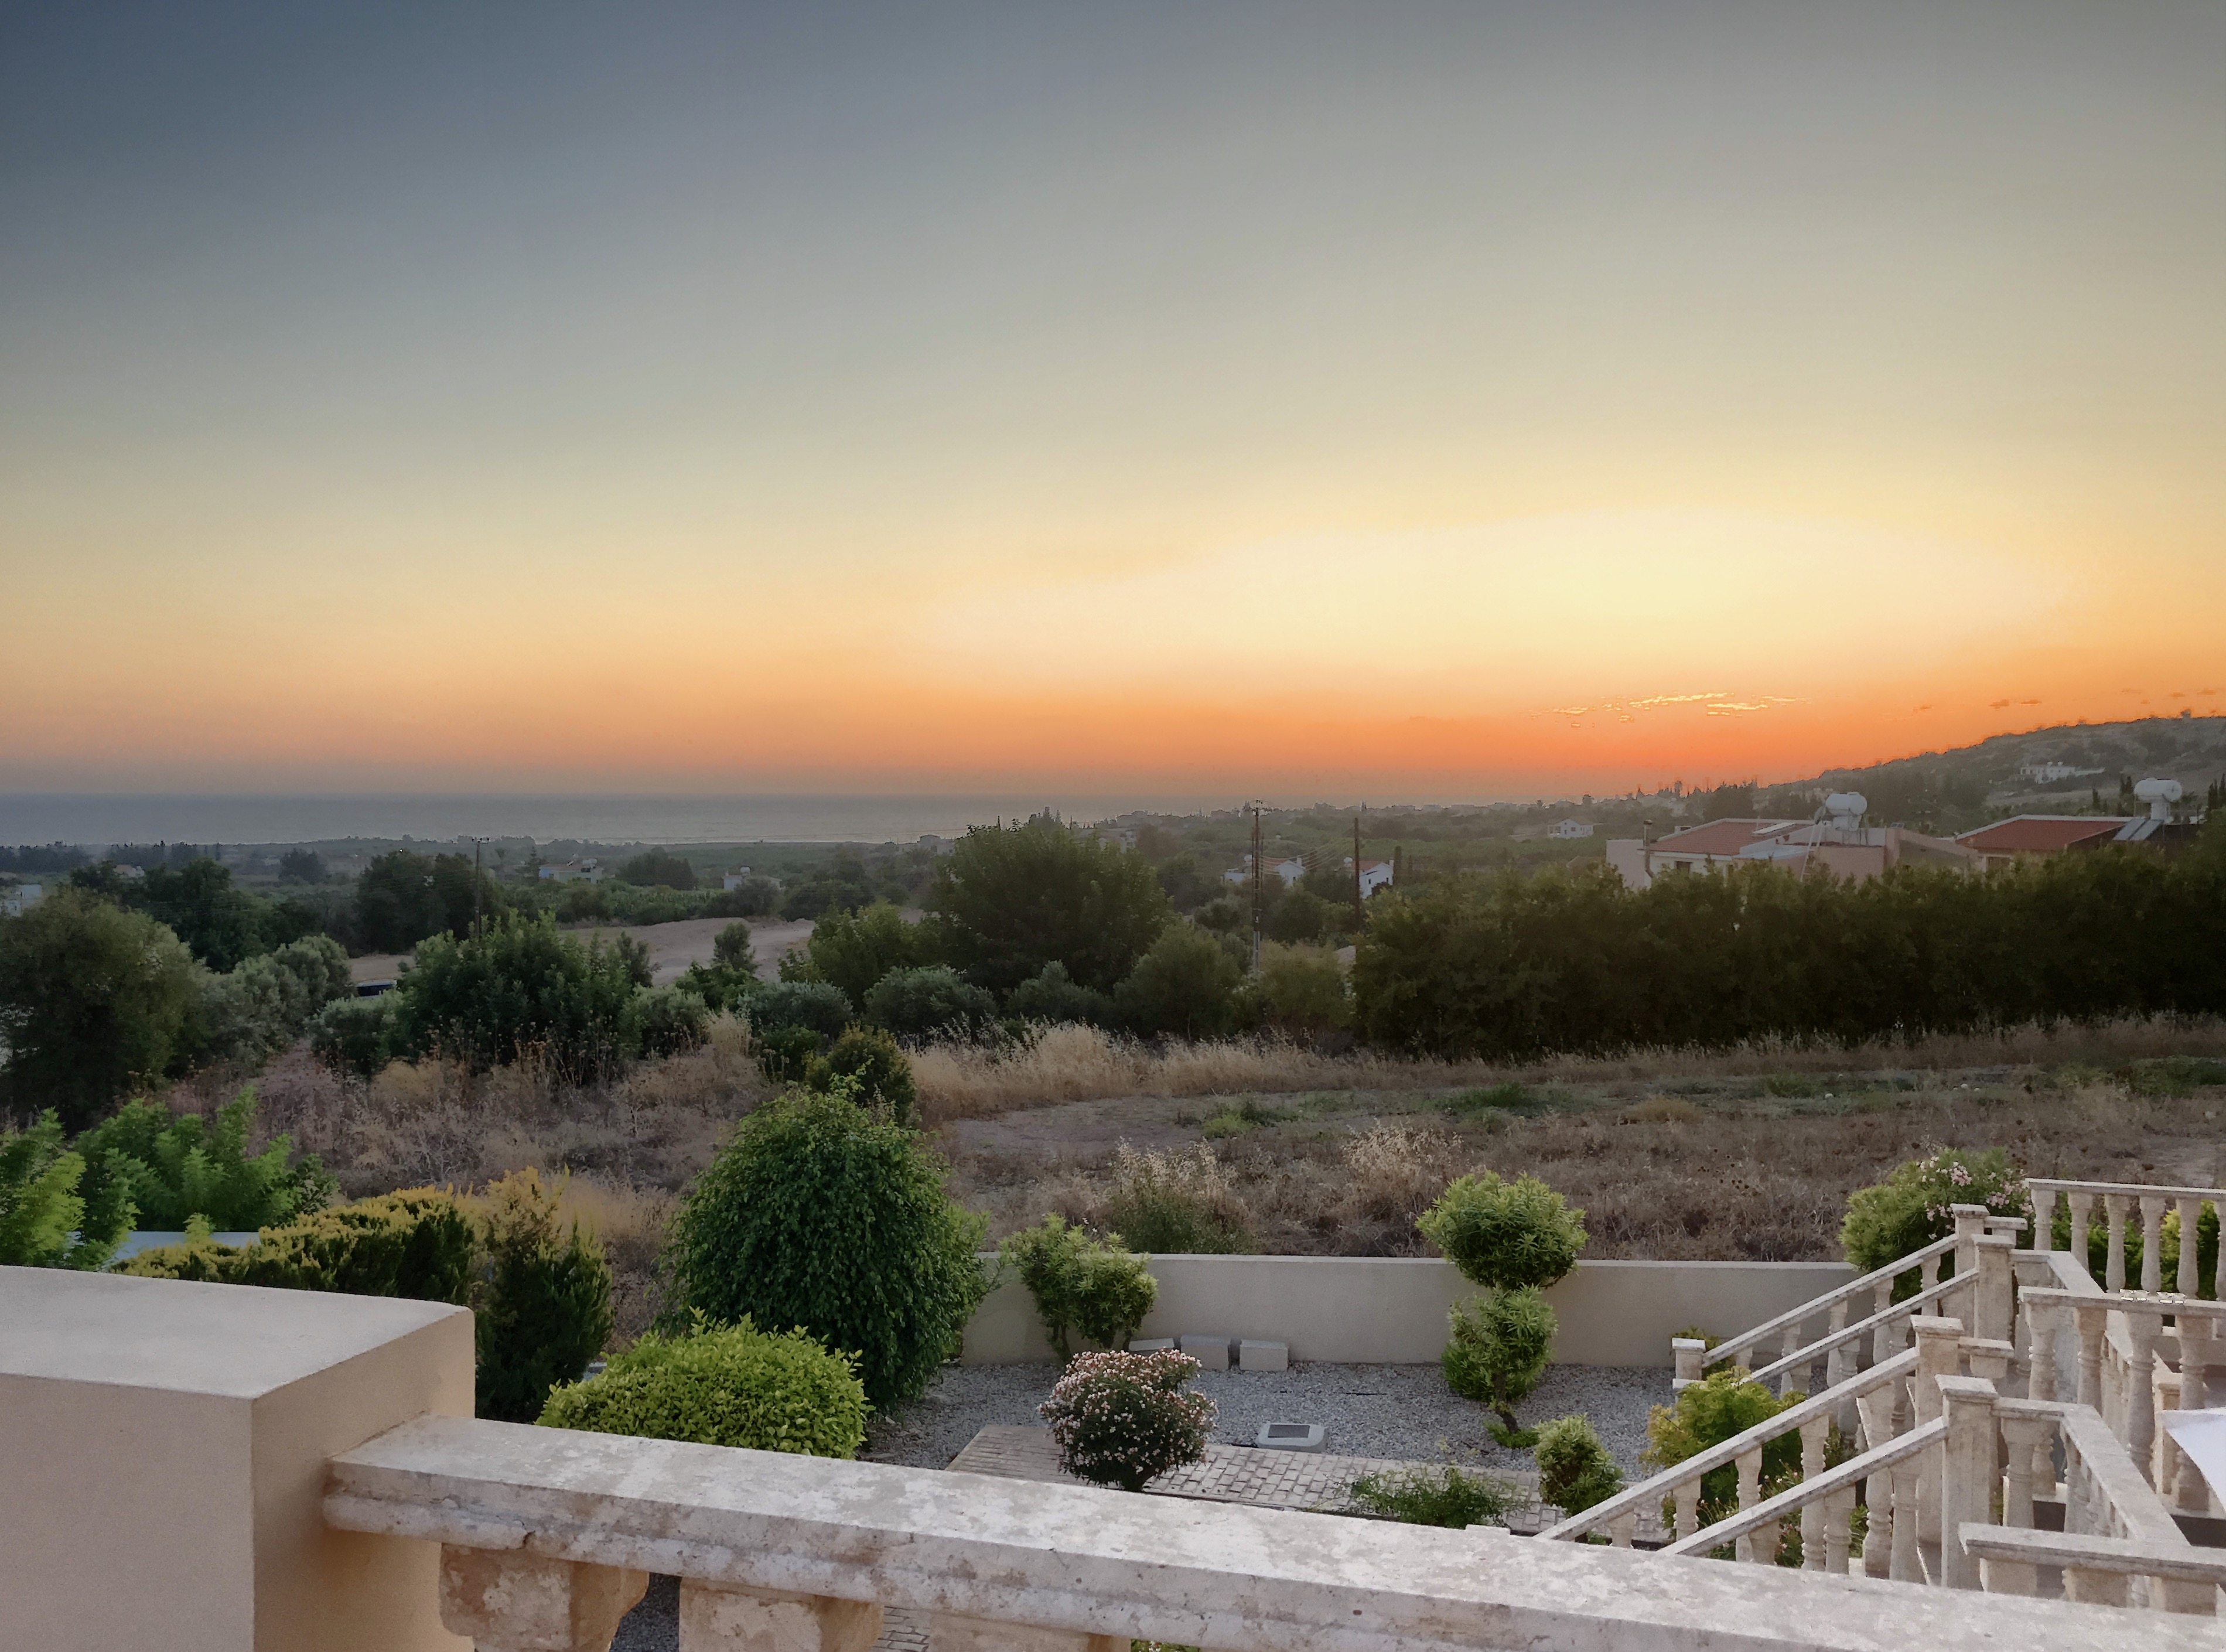 Cyprus apartment sunset view